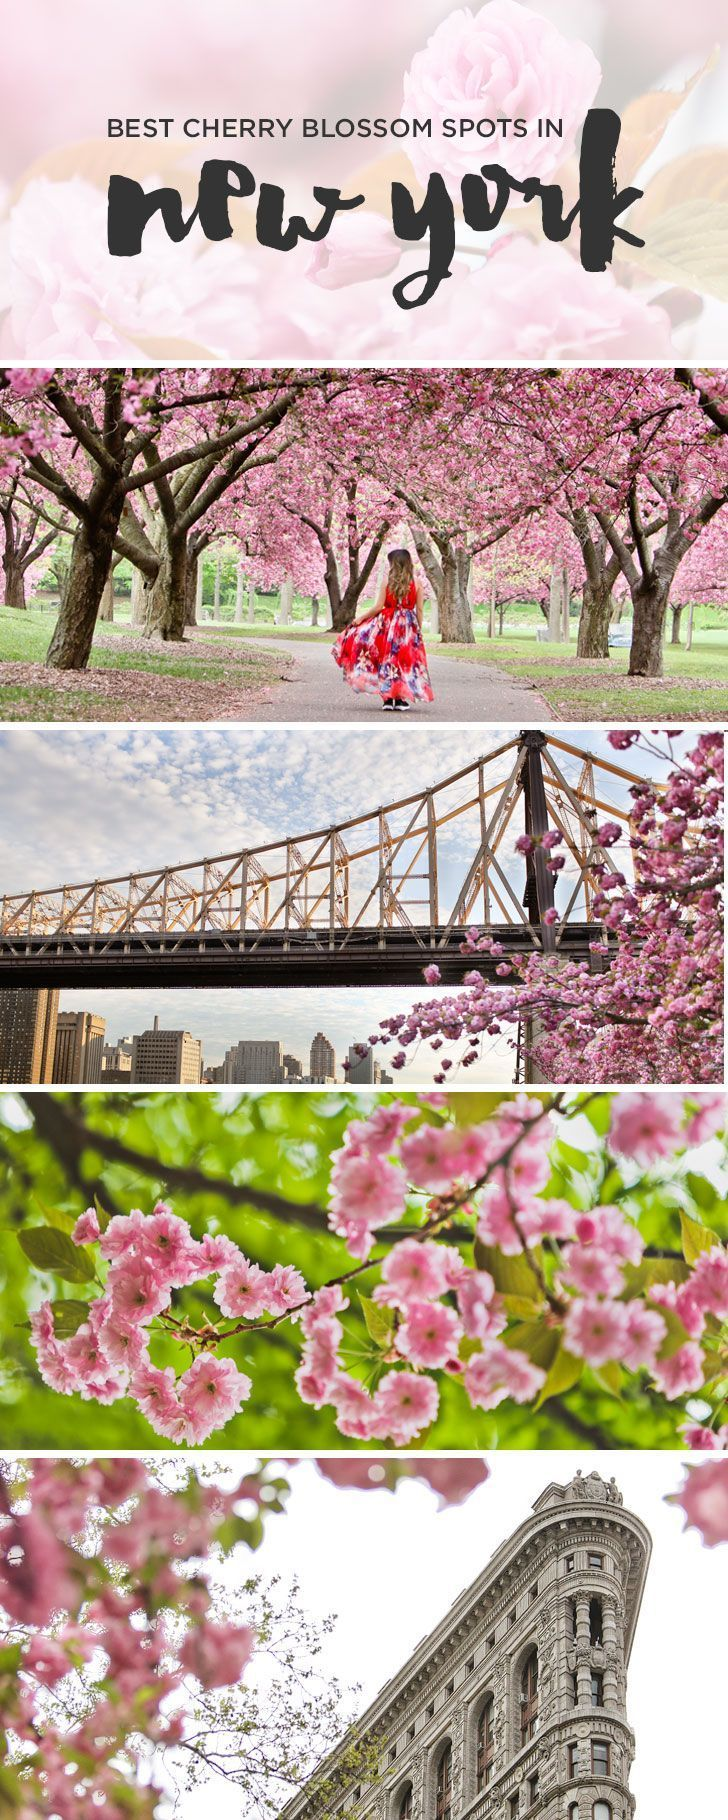 Best Places To See Cherry Blossoms In Nyc Cherry Blossom Places To See Cherry Blossom Festival